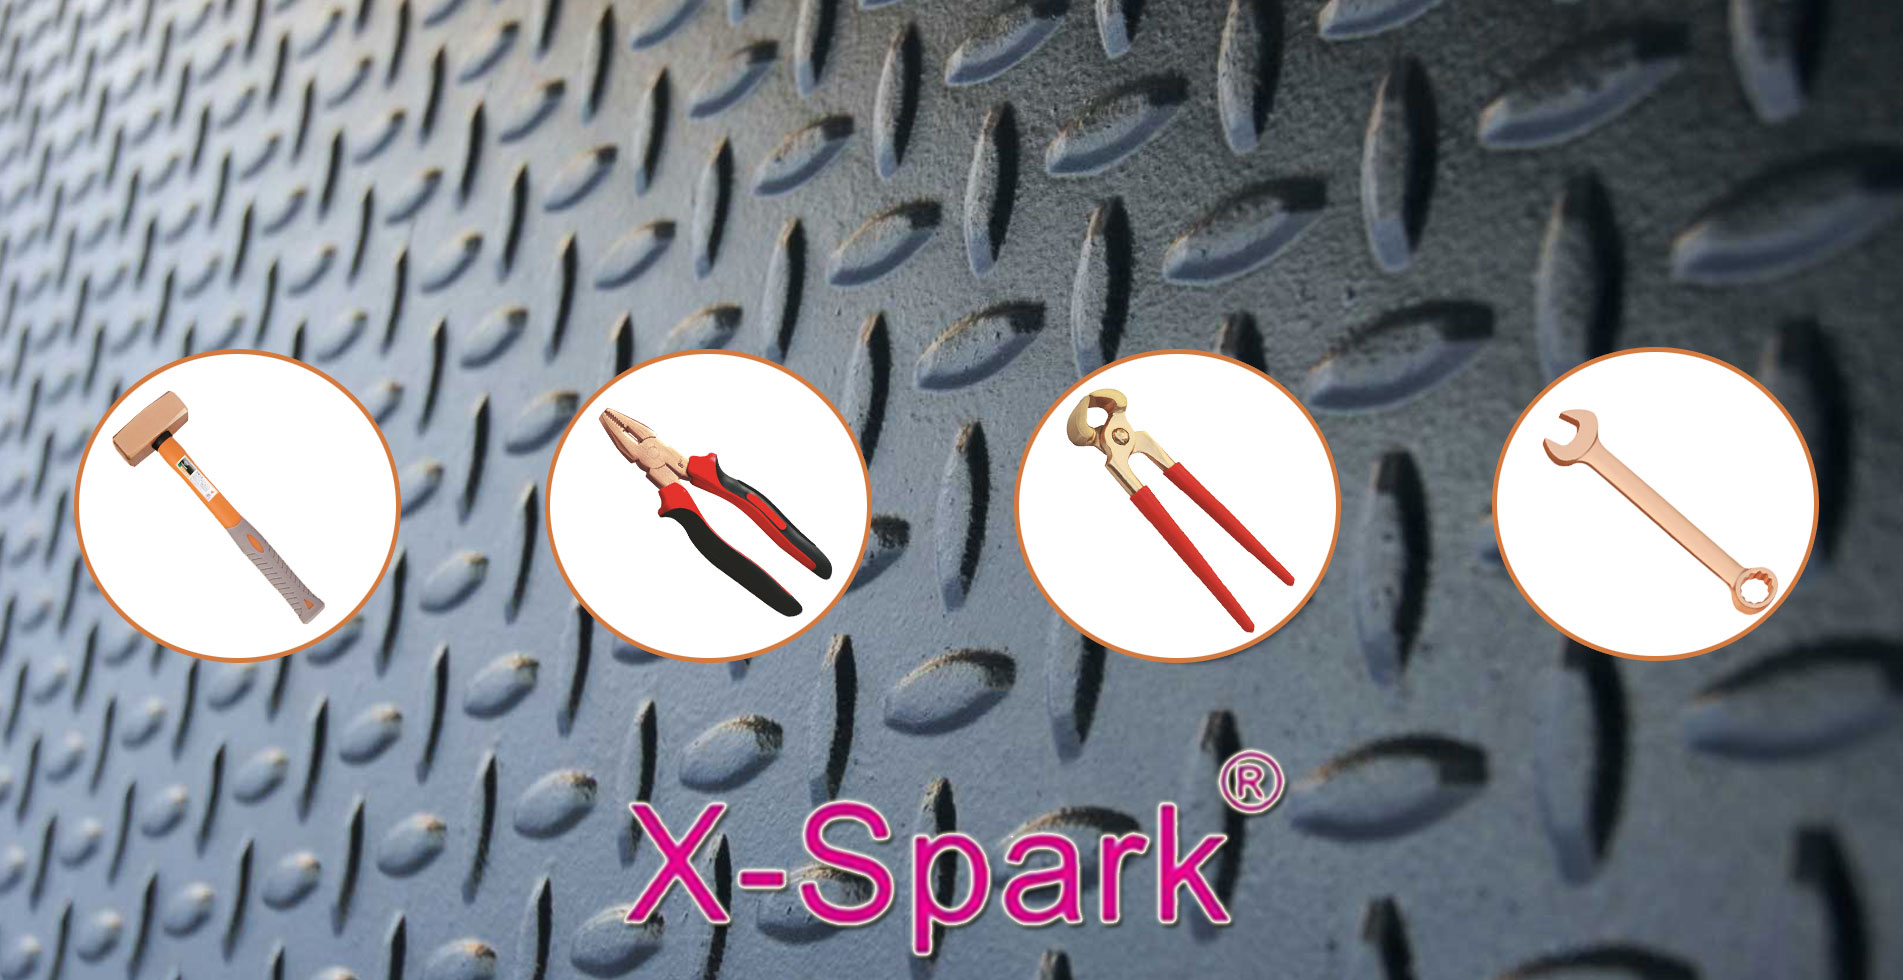 X-SPARK NON-SPARKING TOOLS